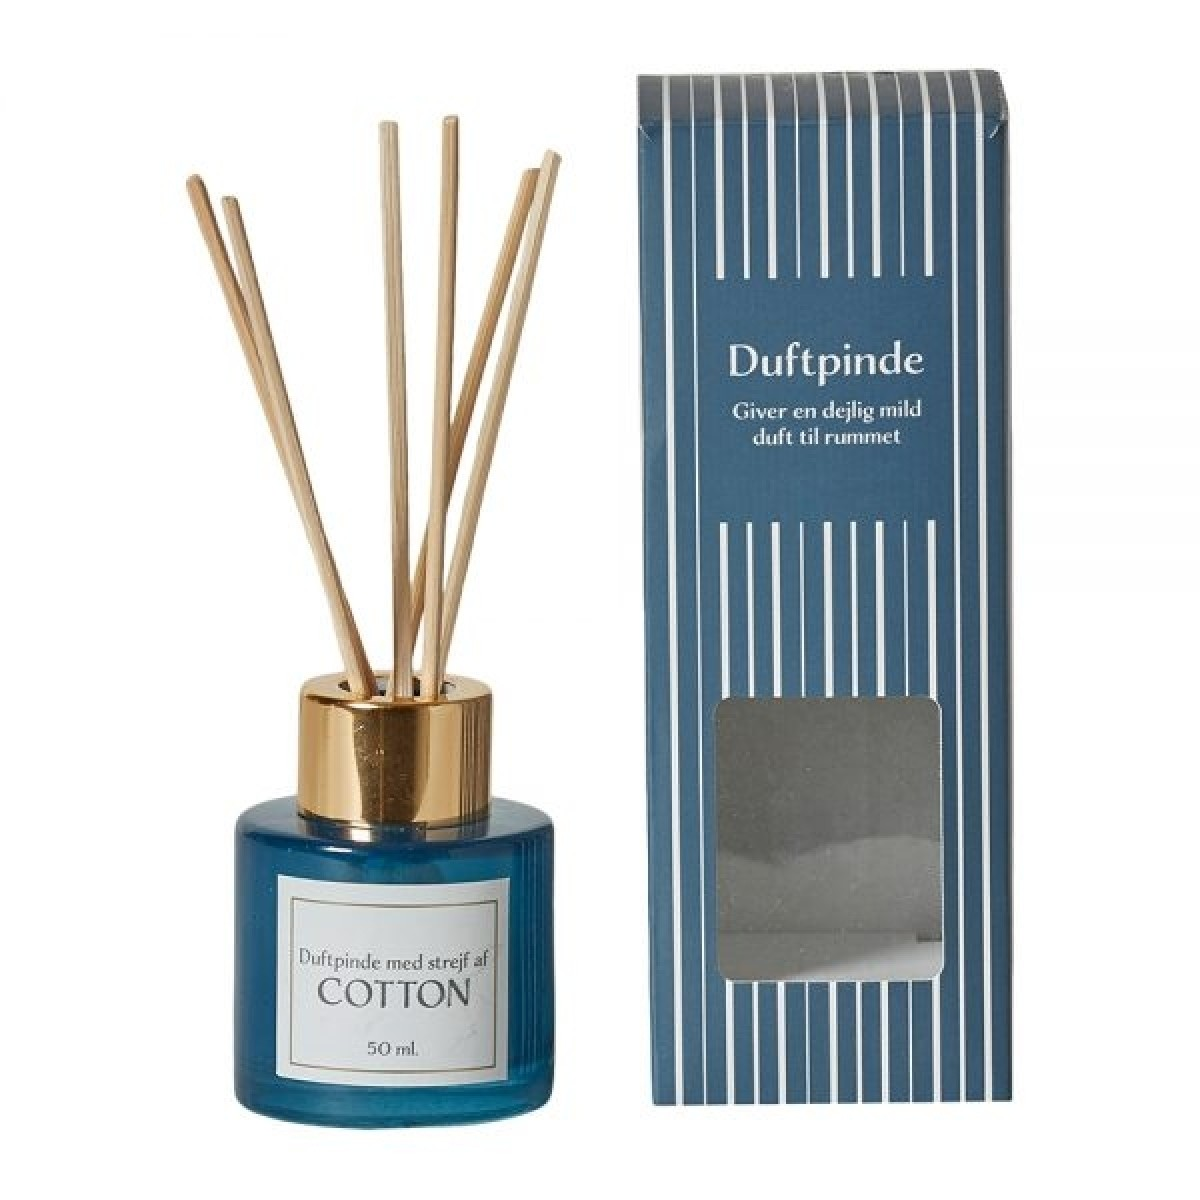 DACORE Duftpinde 50 ml cotton blue